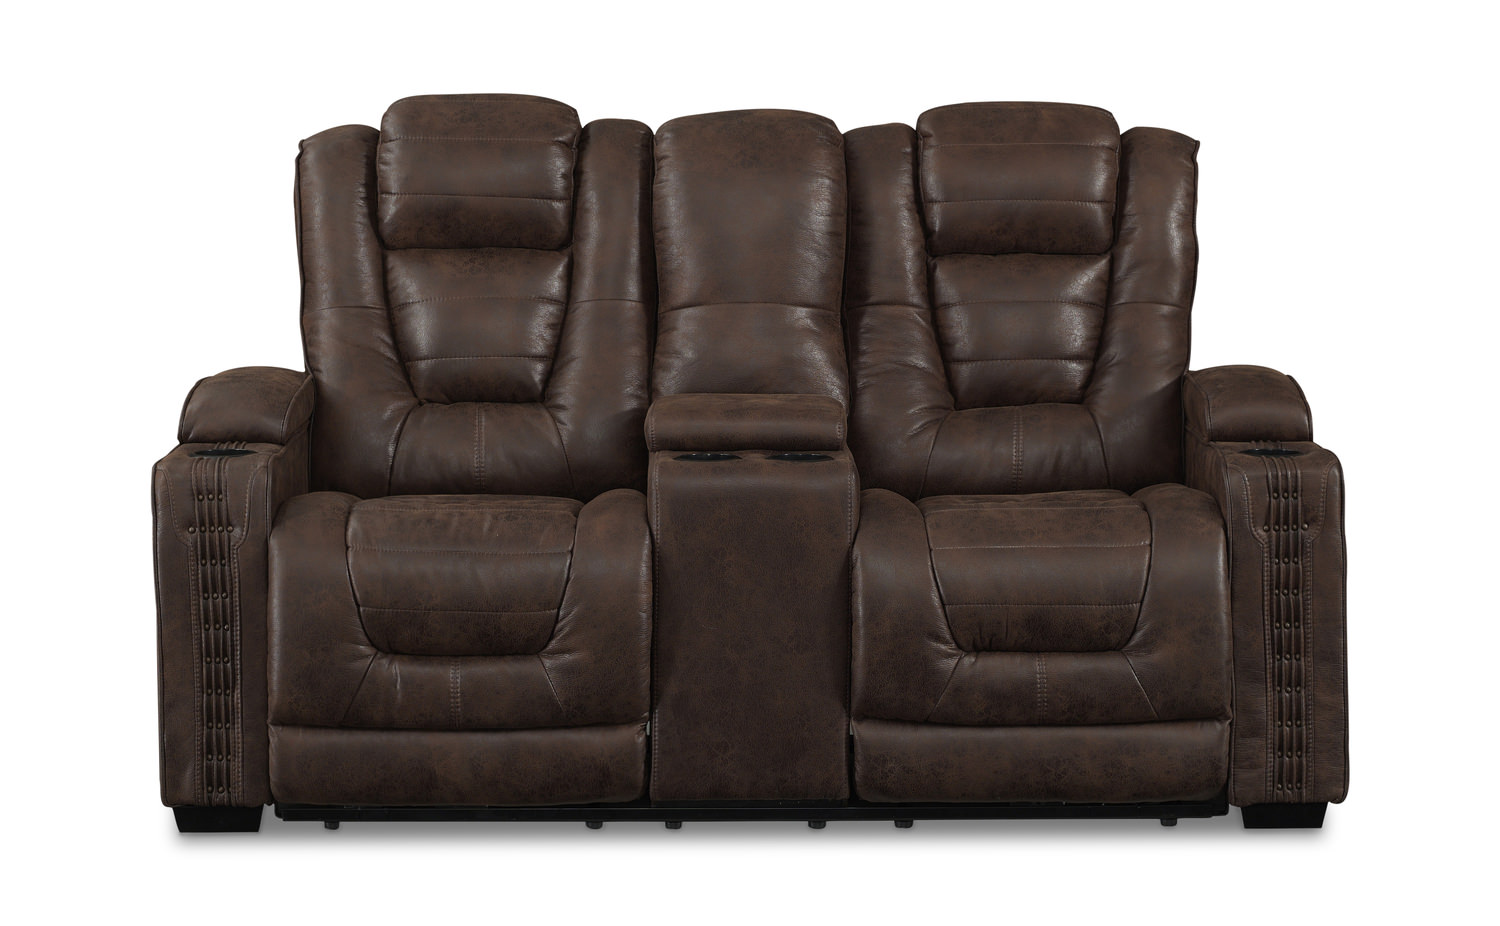 Attractive Morph Power Reclining Loveseat With Console ...